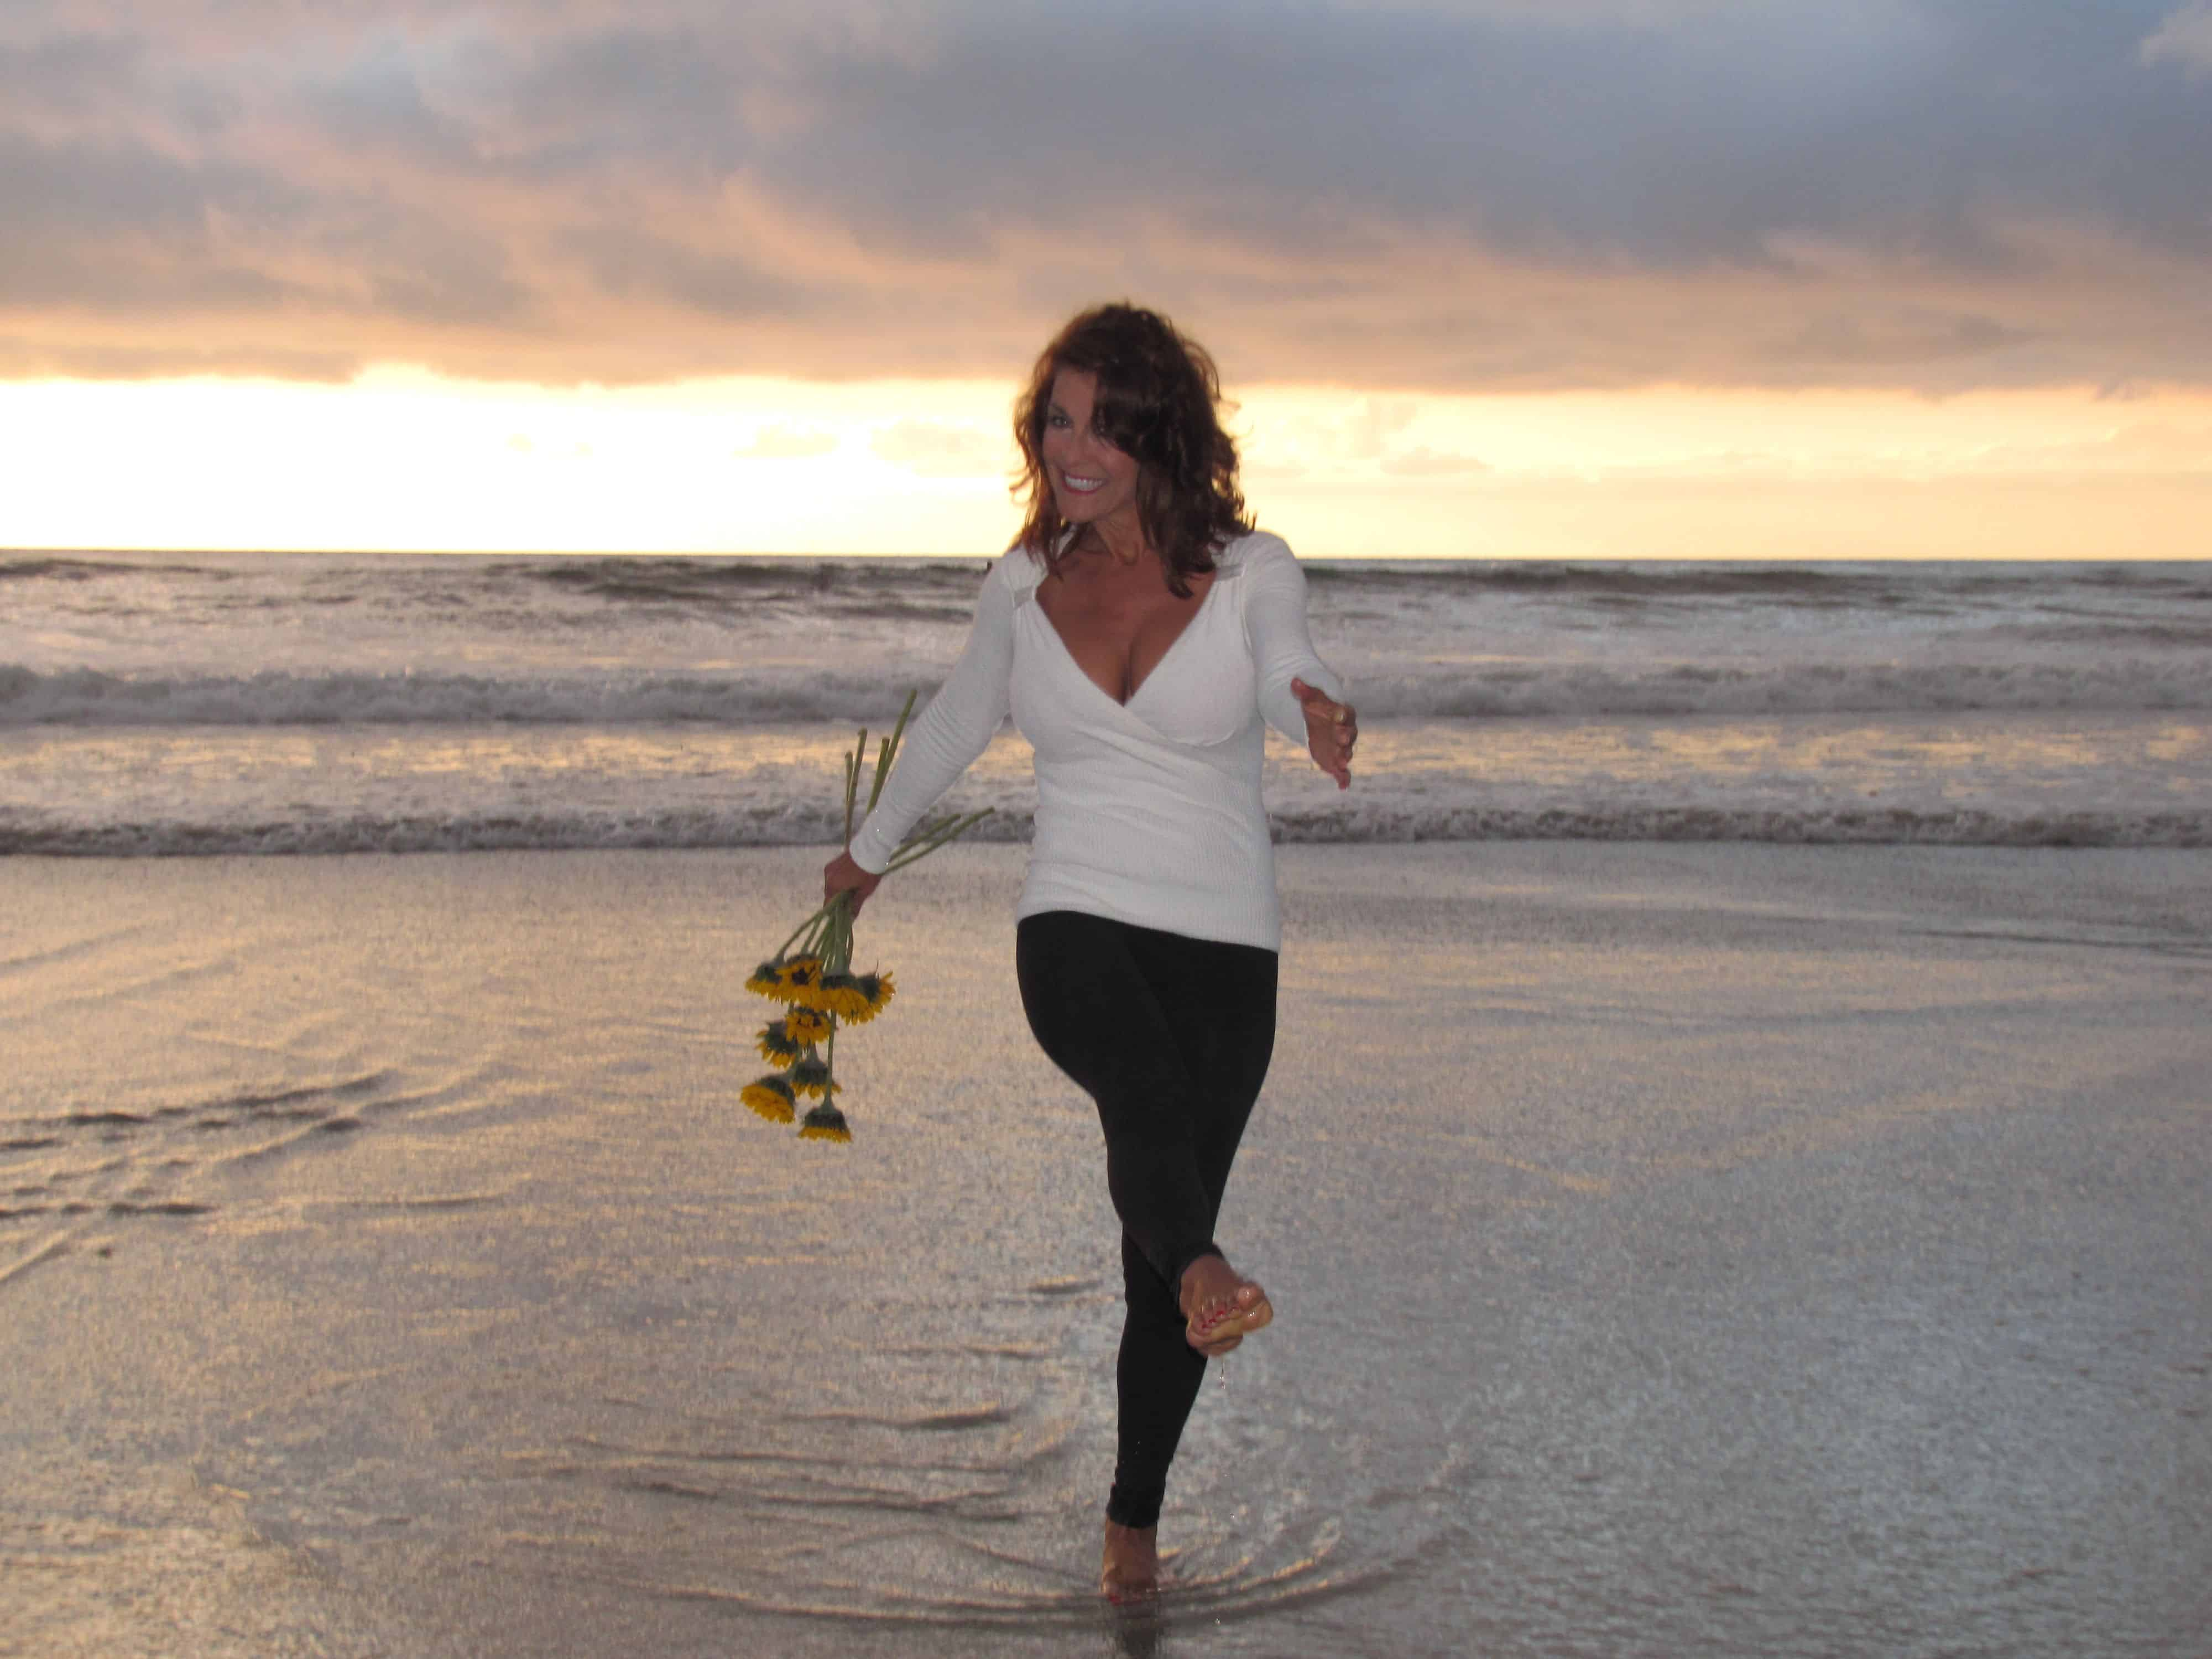 Fitness-First-Getting-Fit-Fitness-World-Health-and-Fitness-Kathleen-Pagnini-Fitness-Core-Exercises-Beverly-Hills-Magazine